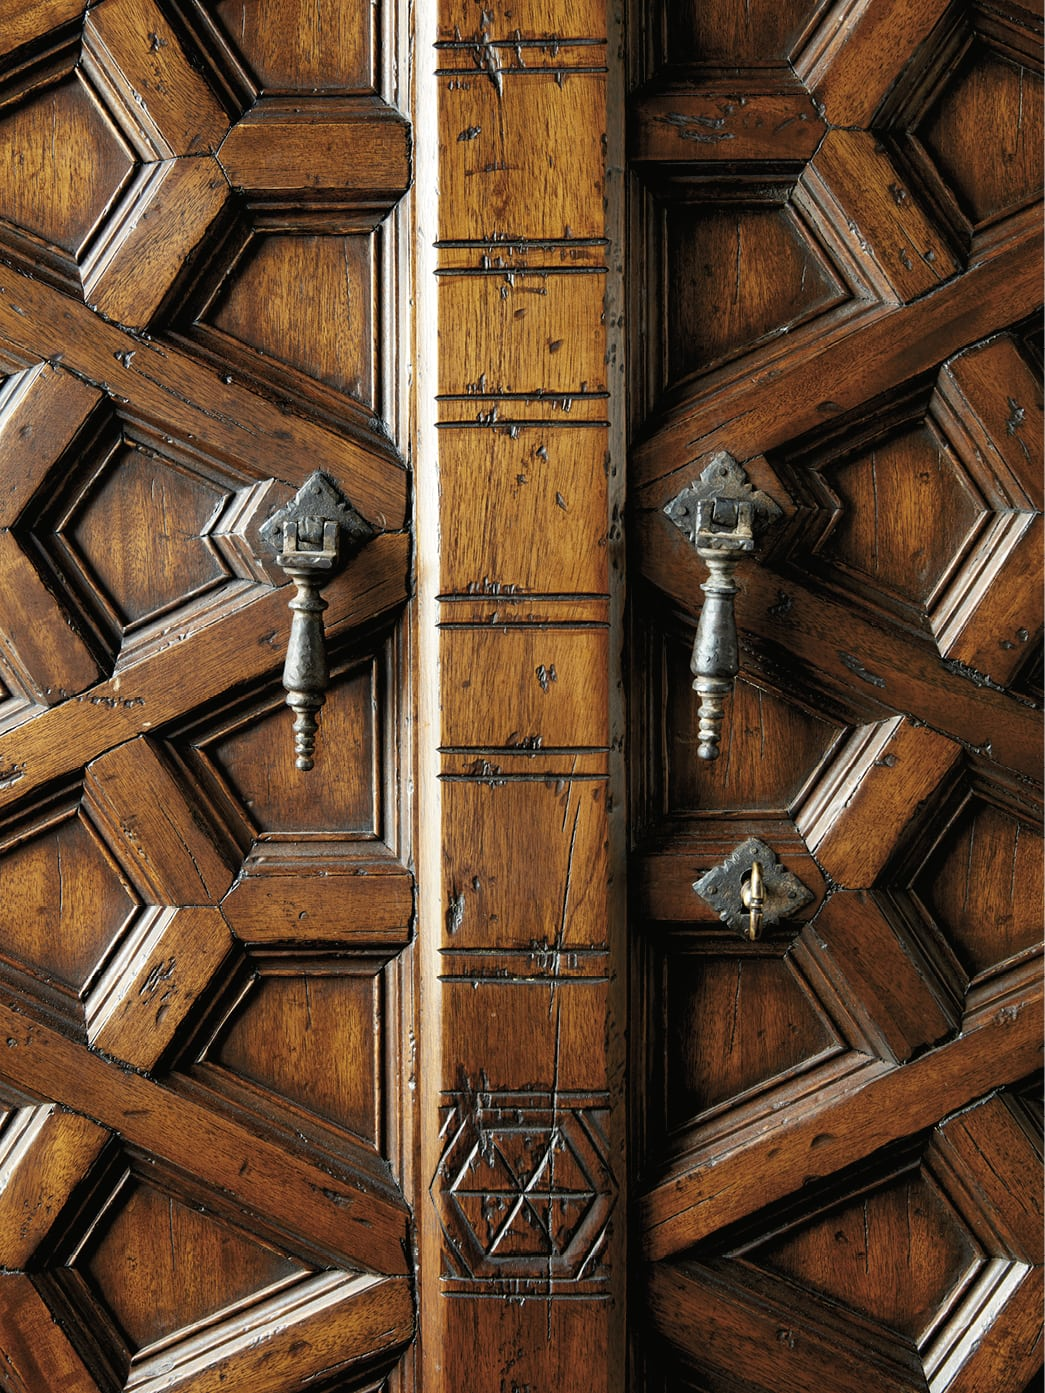 Detail of an ornately carved door